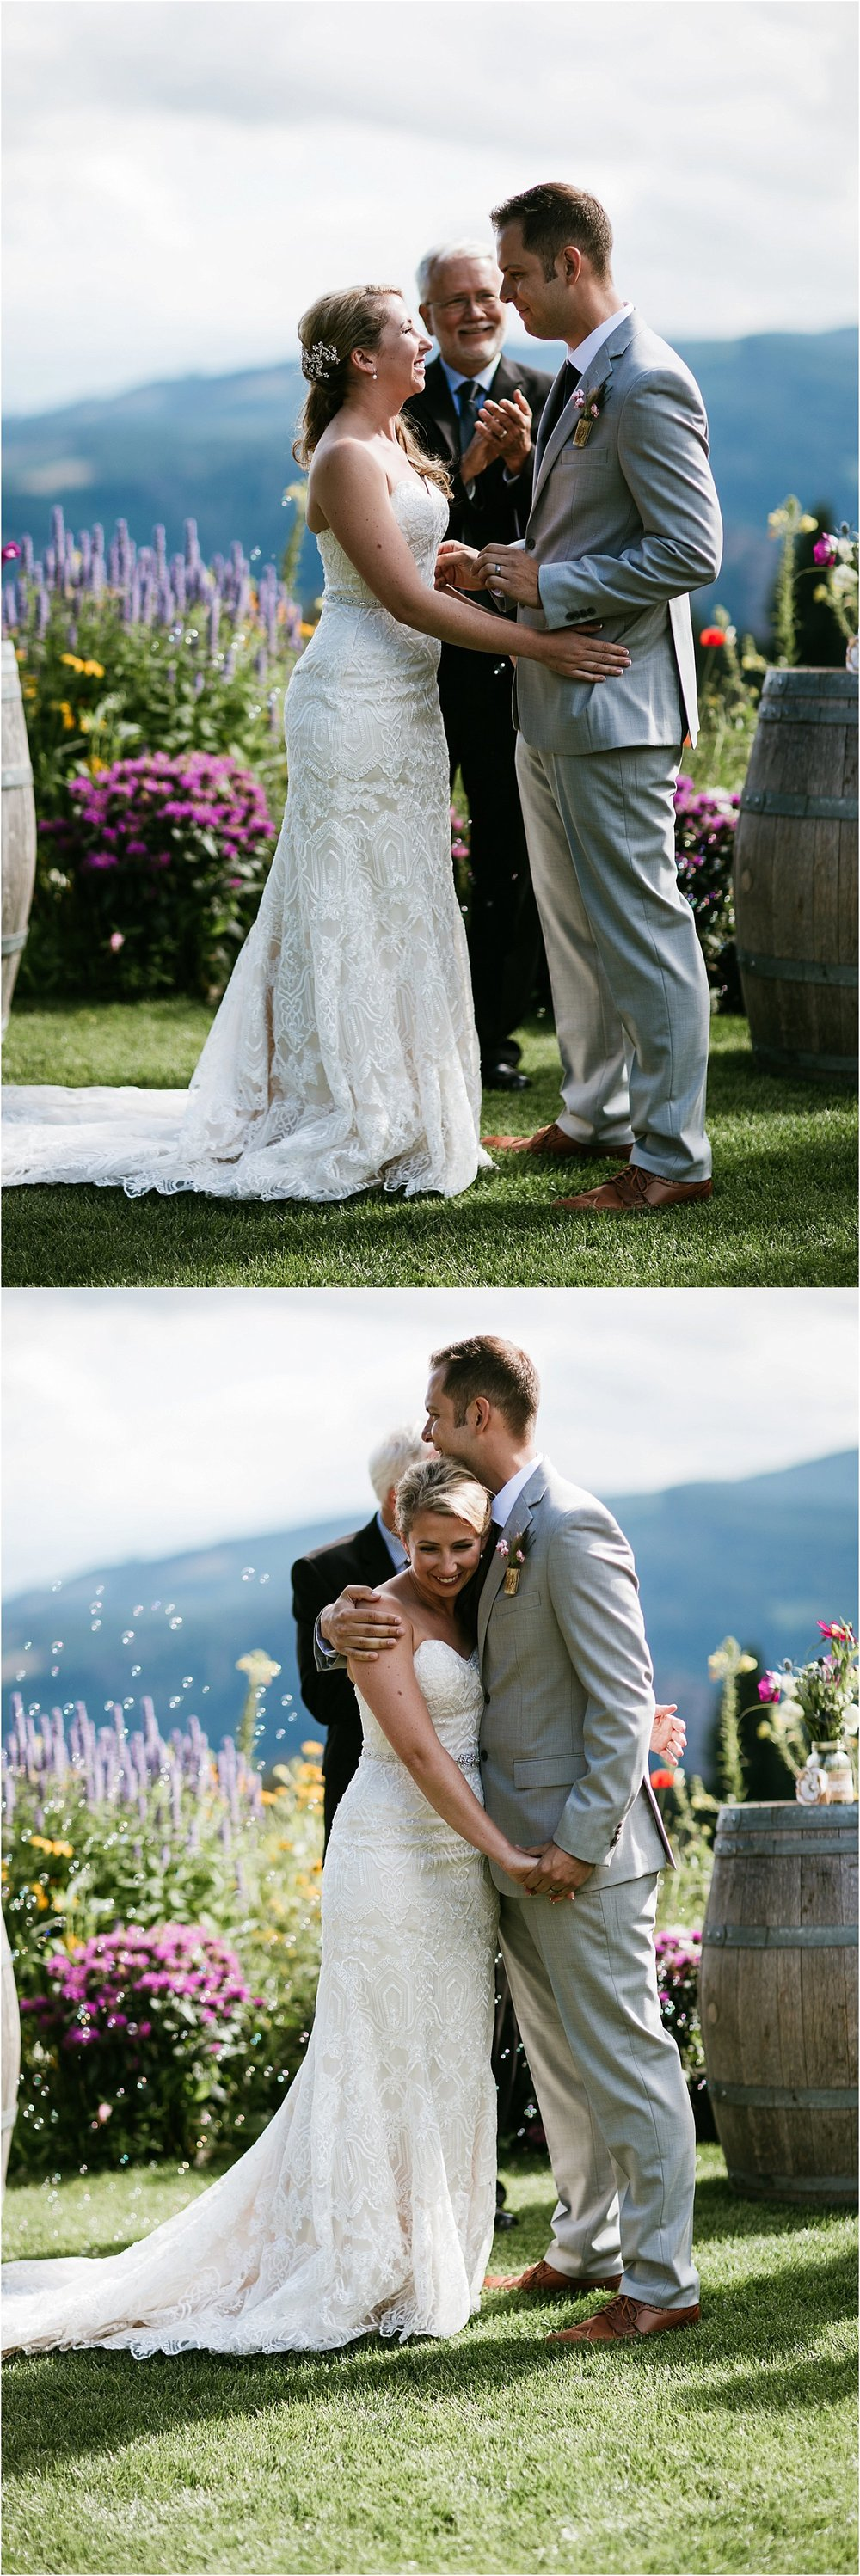 ColumbiaGorgeWedding.OregonWeddingPhotographer-86.jpg